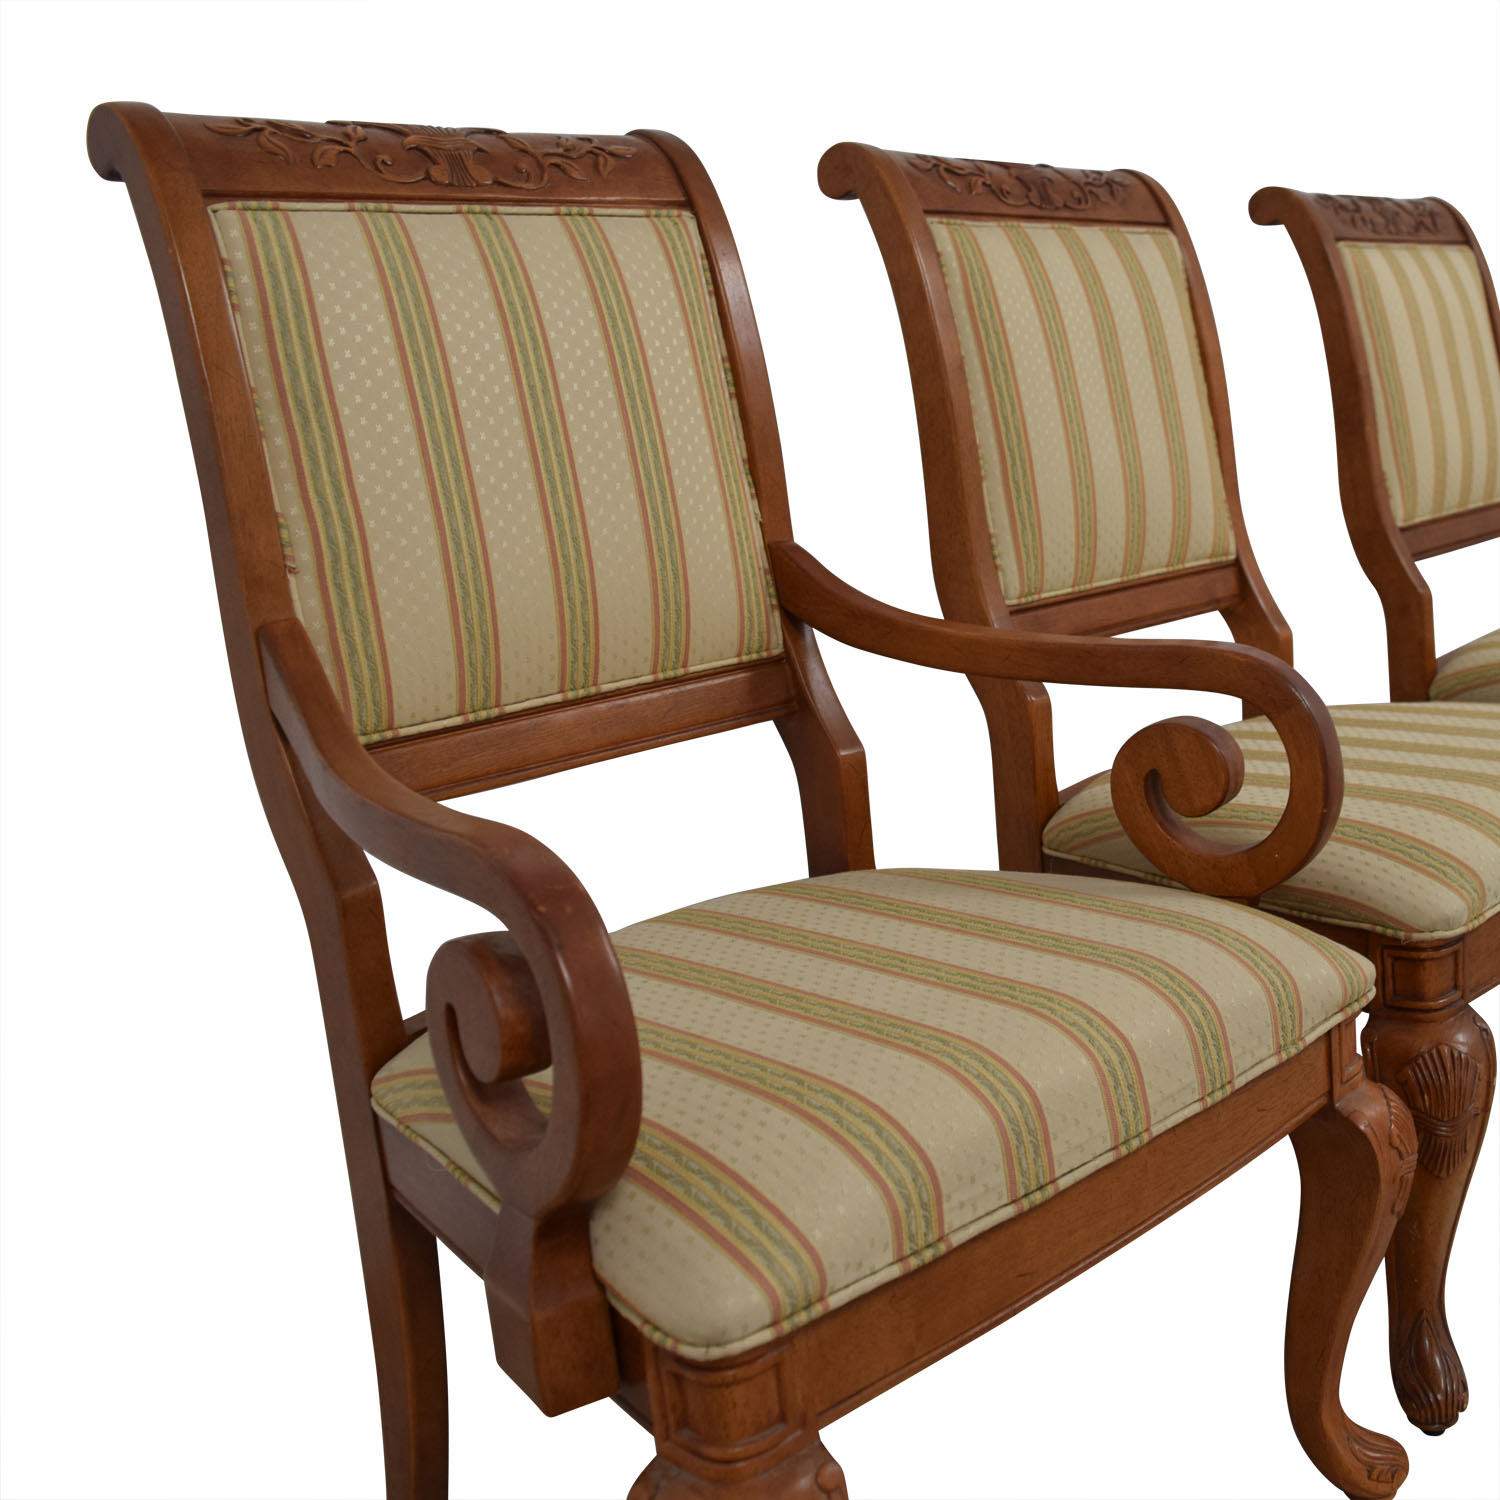 Furniture Masters Striped Upholstered Carved Dining Chairs / Dining Chairs